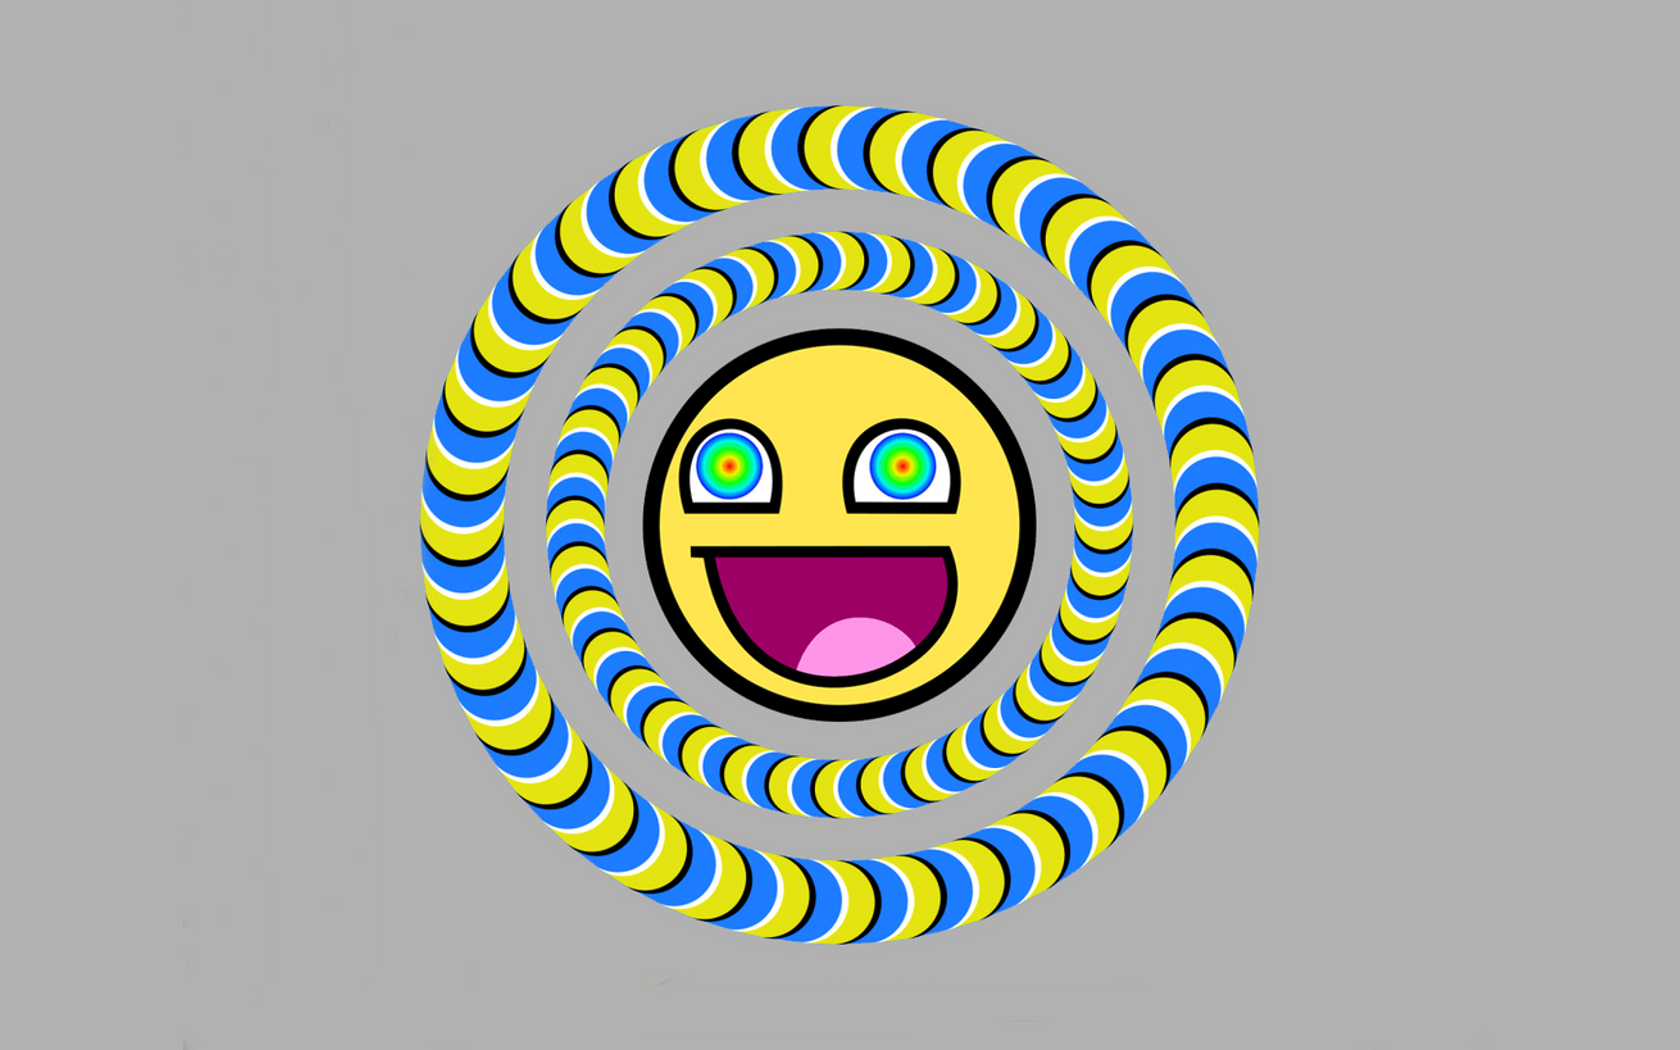 Awesome Smiley Face Wallpaper Smiley awesome wallpaper 1680x1050